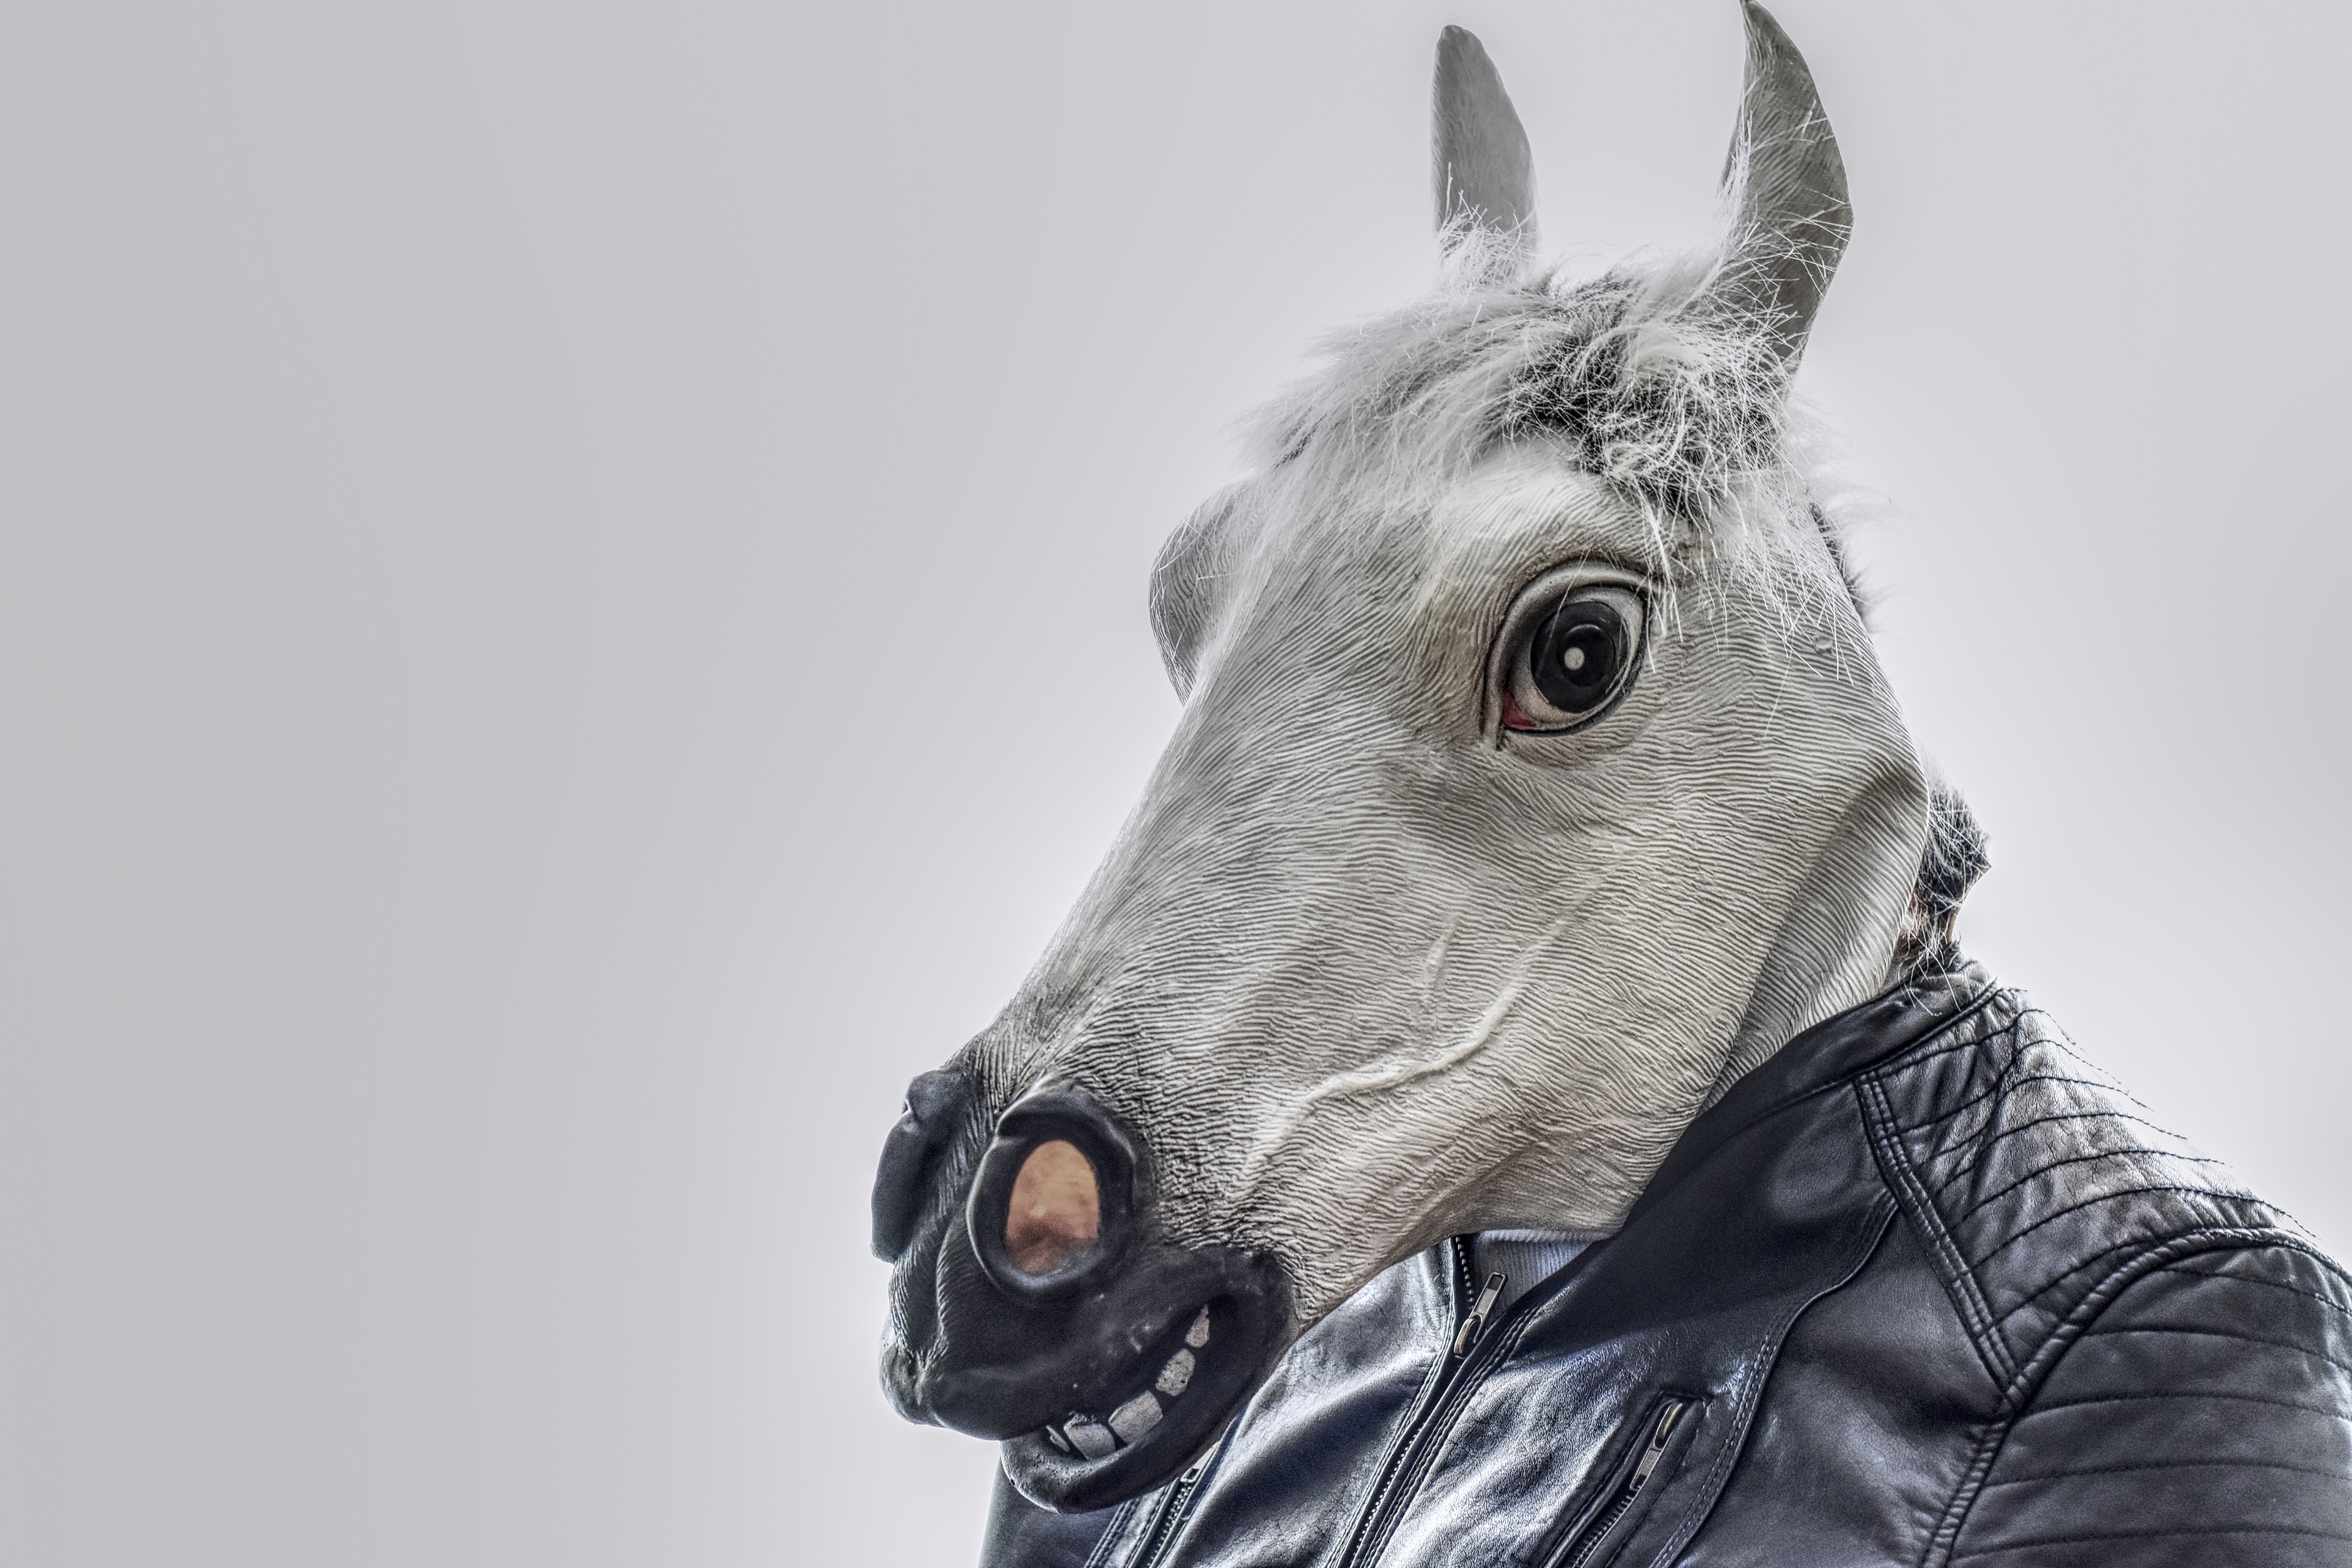 A funny-looking horse. | Source: Pexels